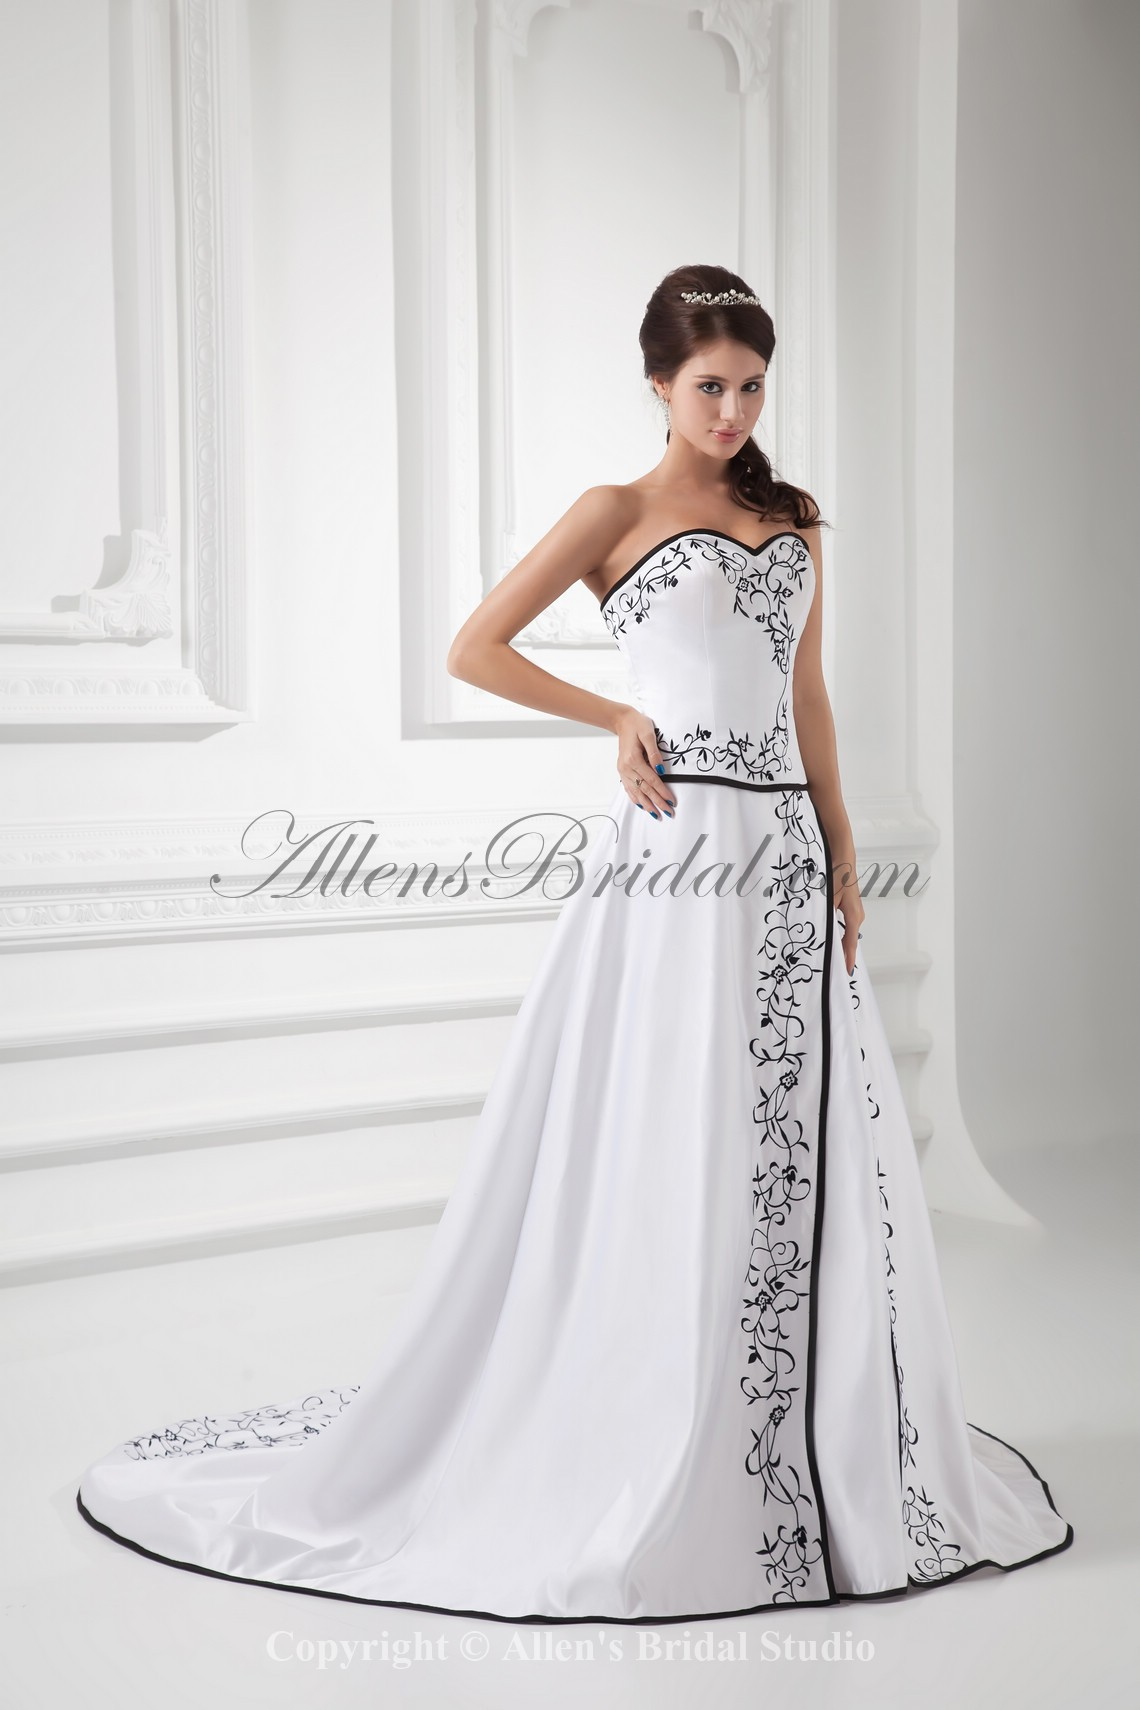 /988-7920/satin-sweetheart-neckline-a-line-sweep-train-embroidered-wedding-dress.jpg